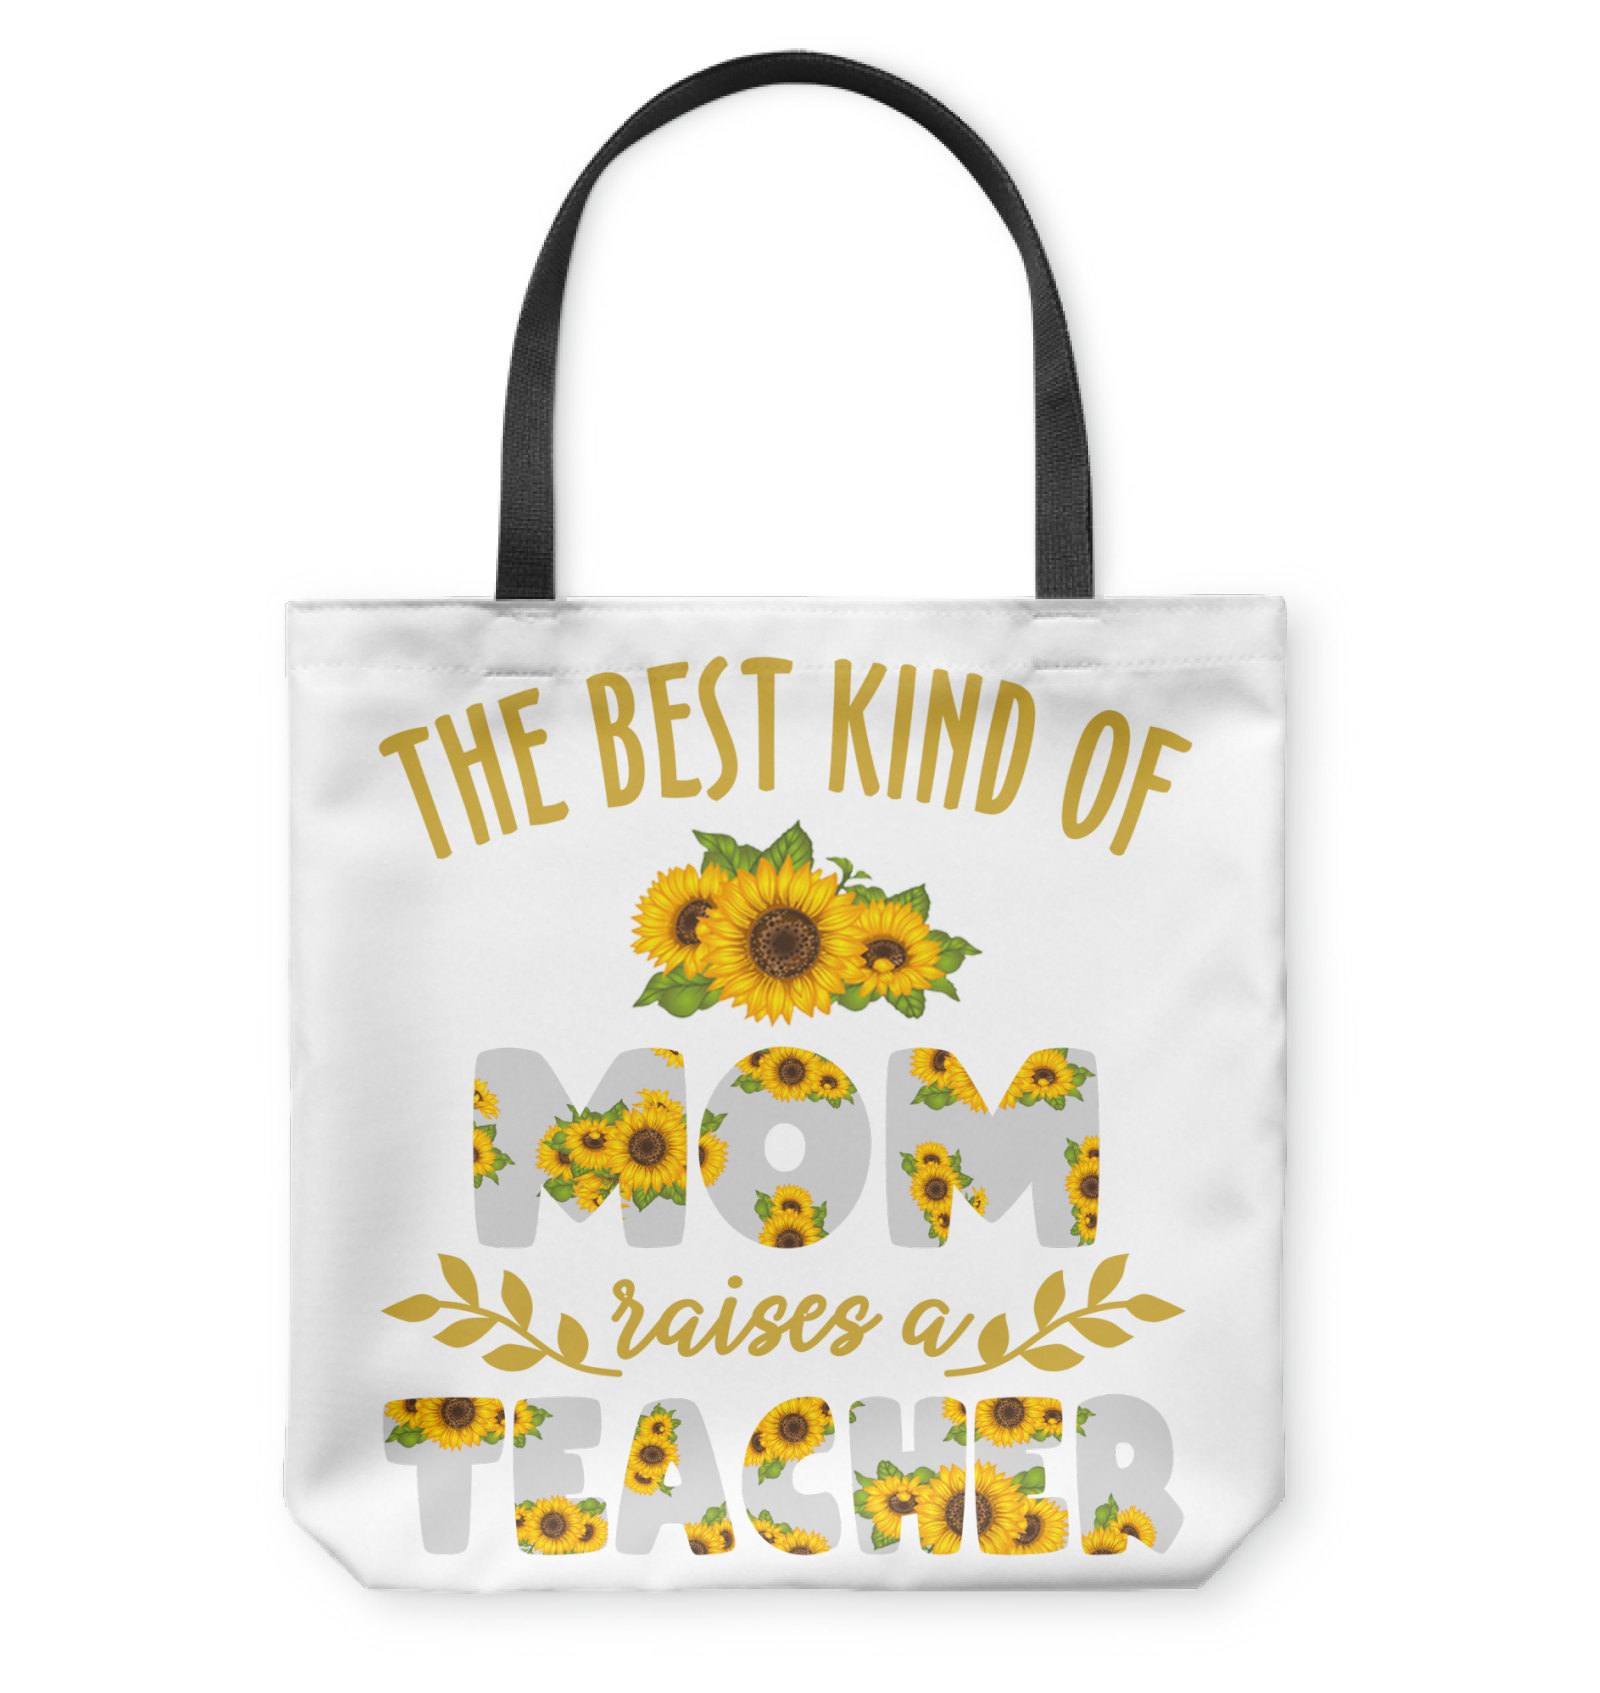 VIRA tote bag for awesome teachers & moms